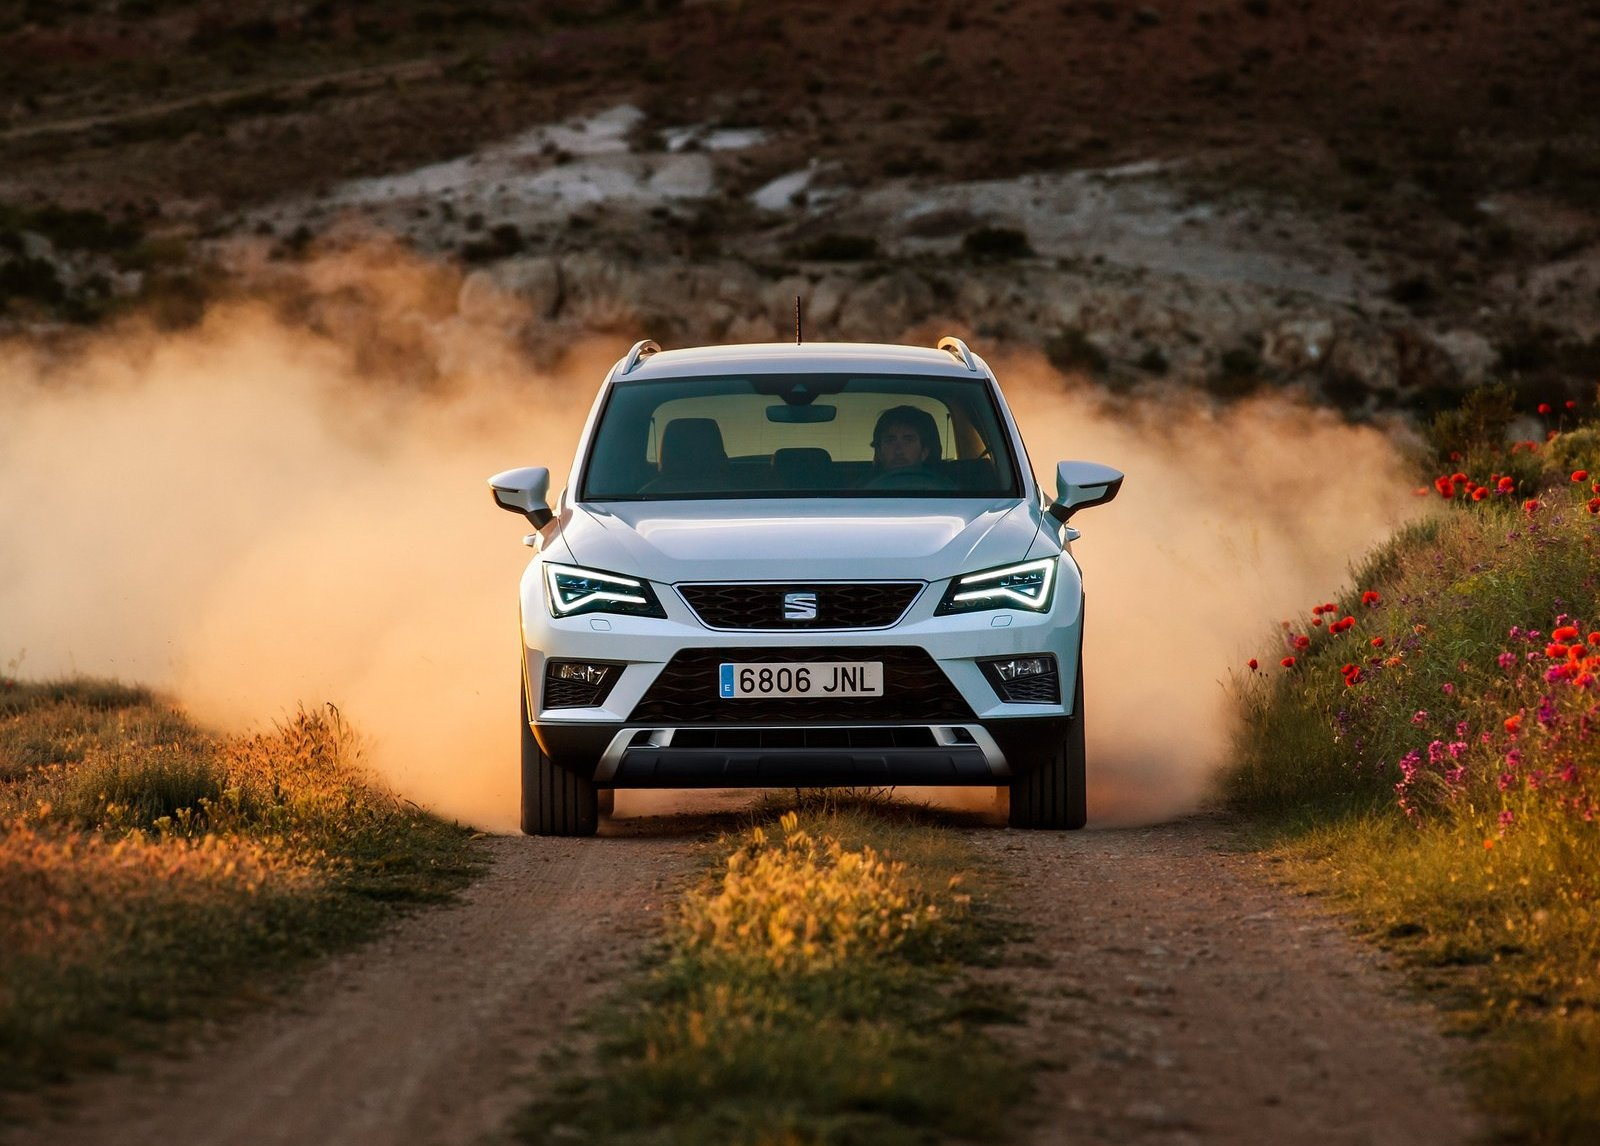 2018 Seat Ateca off road test